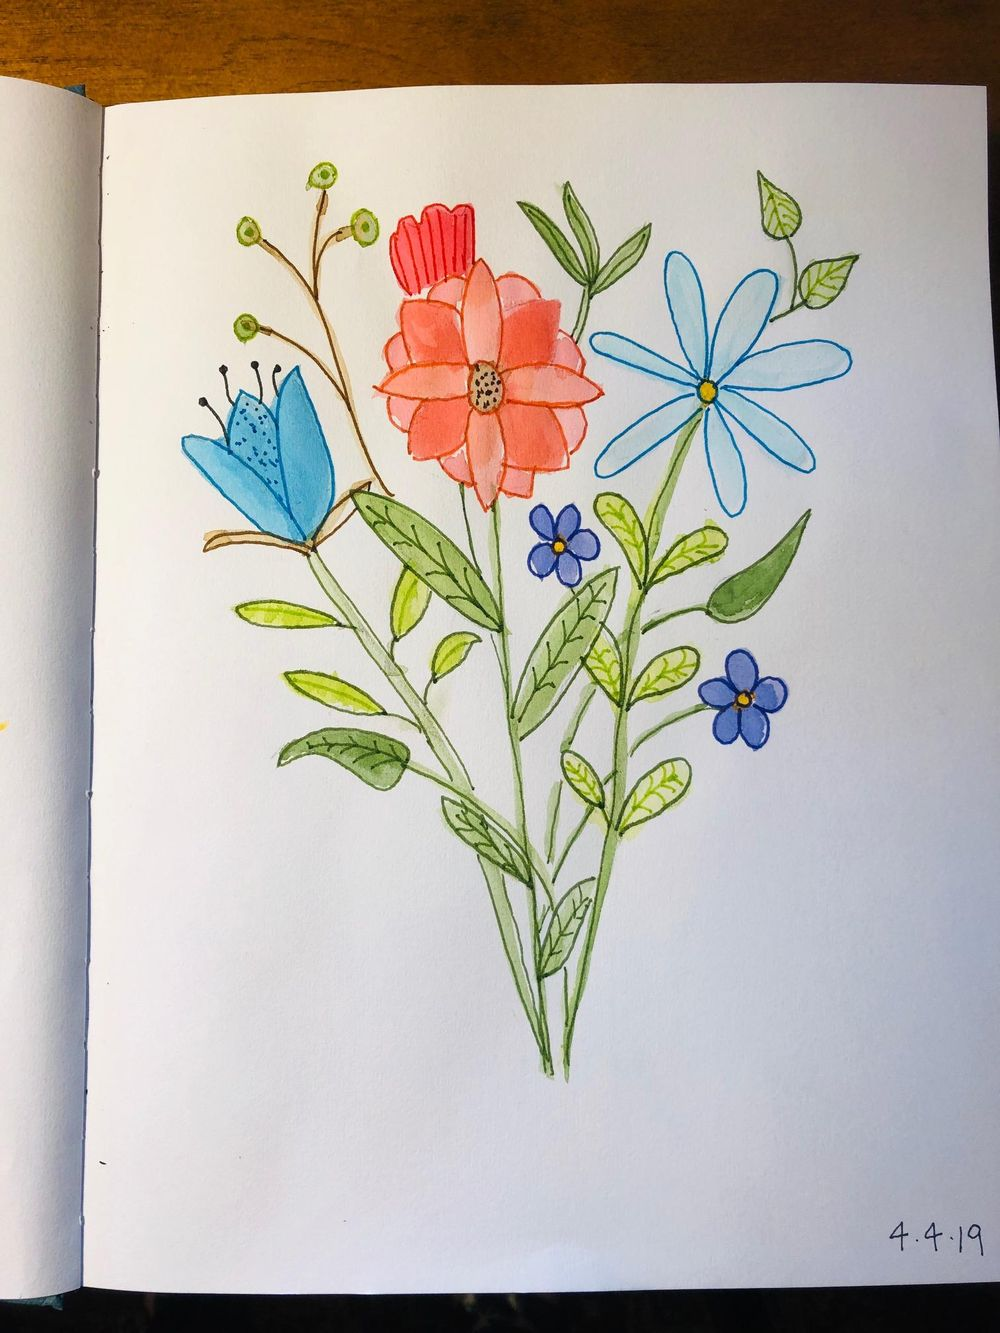 Florals and Bouquet :-) - image 2 - student project